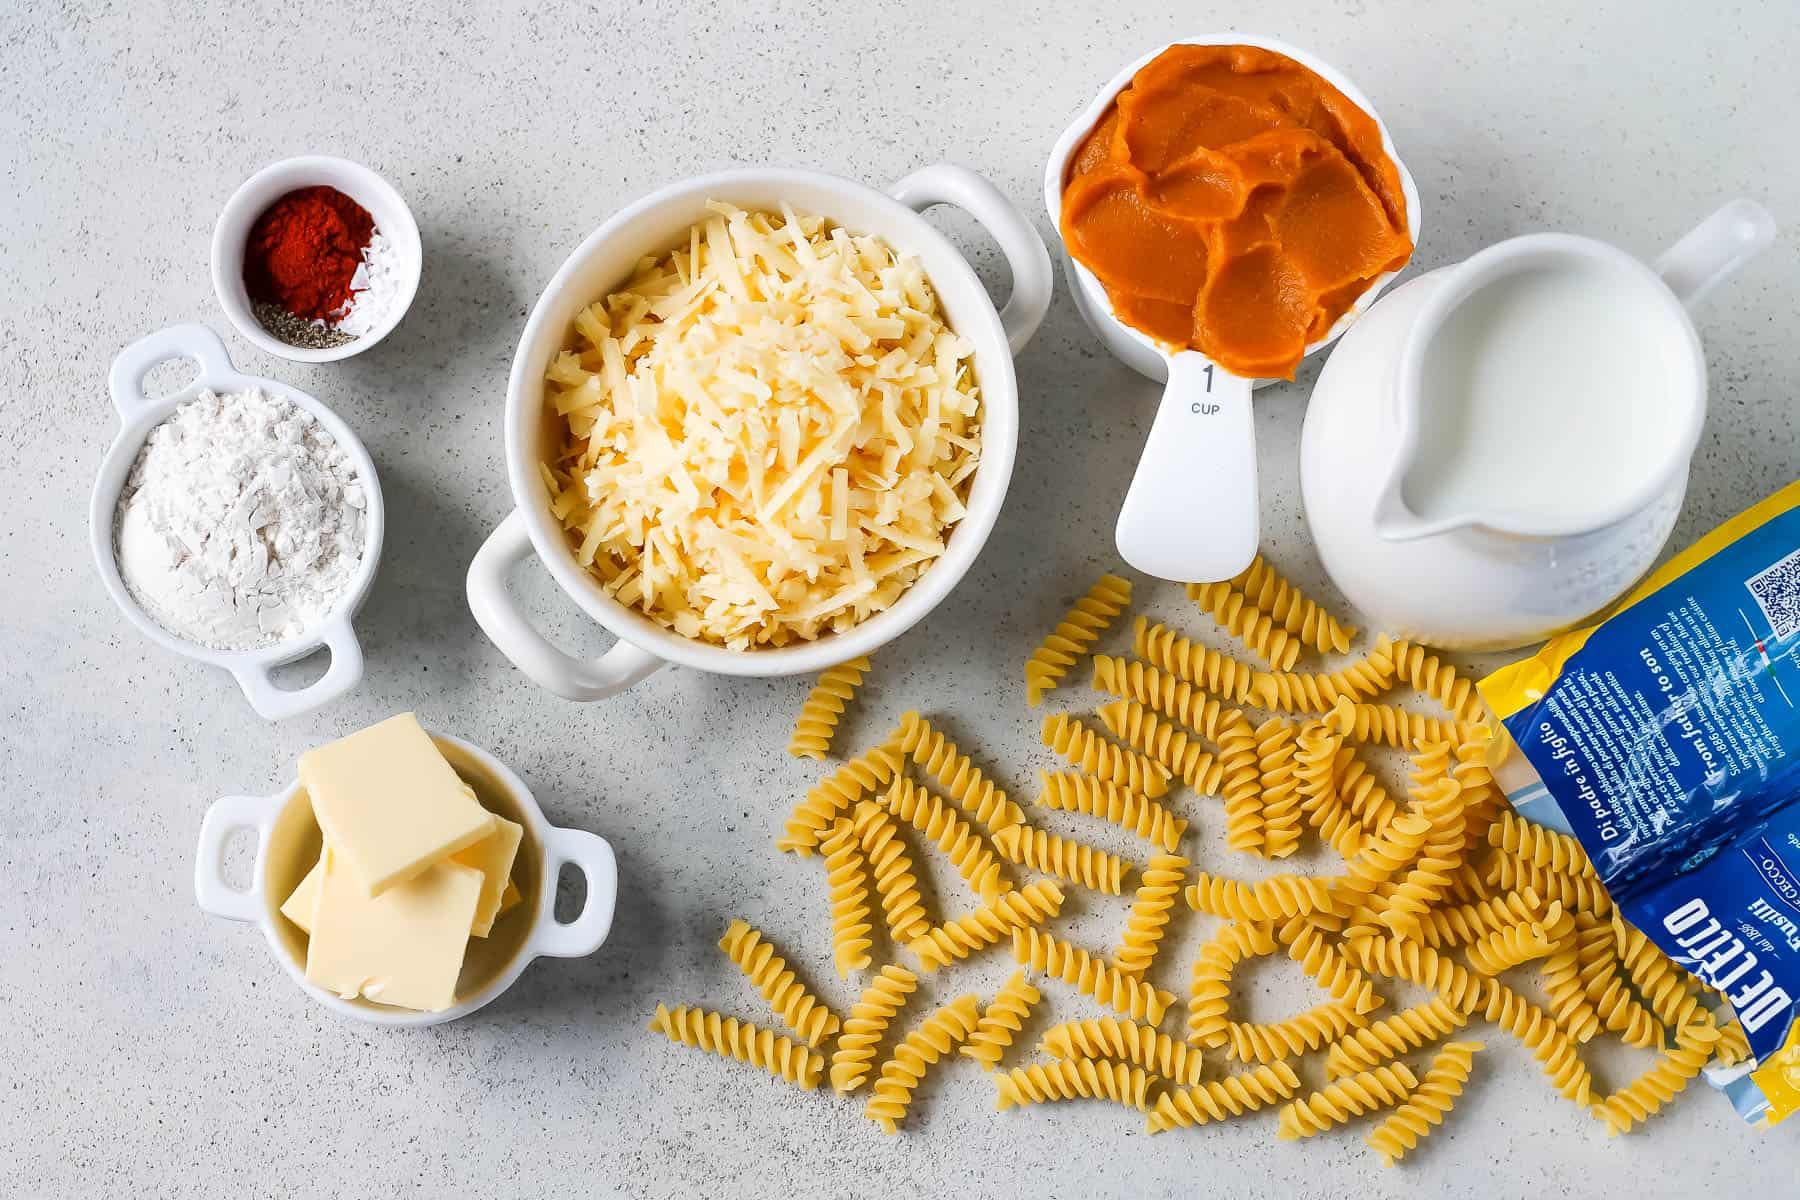 pasta, pumpkin puree, milk, cheese, butter, flour, and spices on a grey background